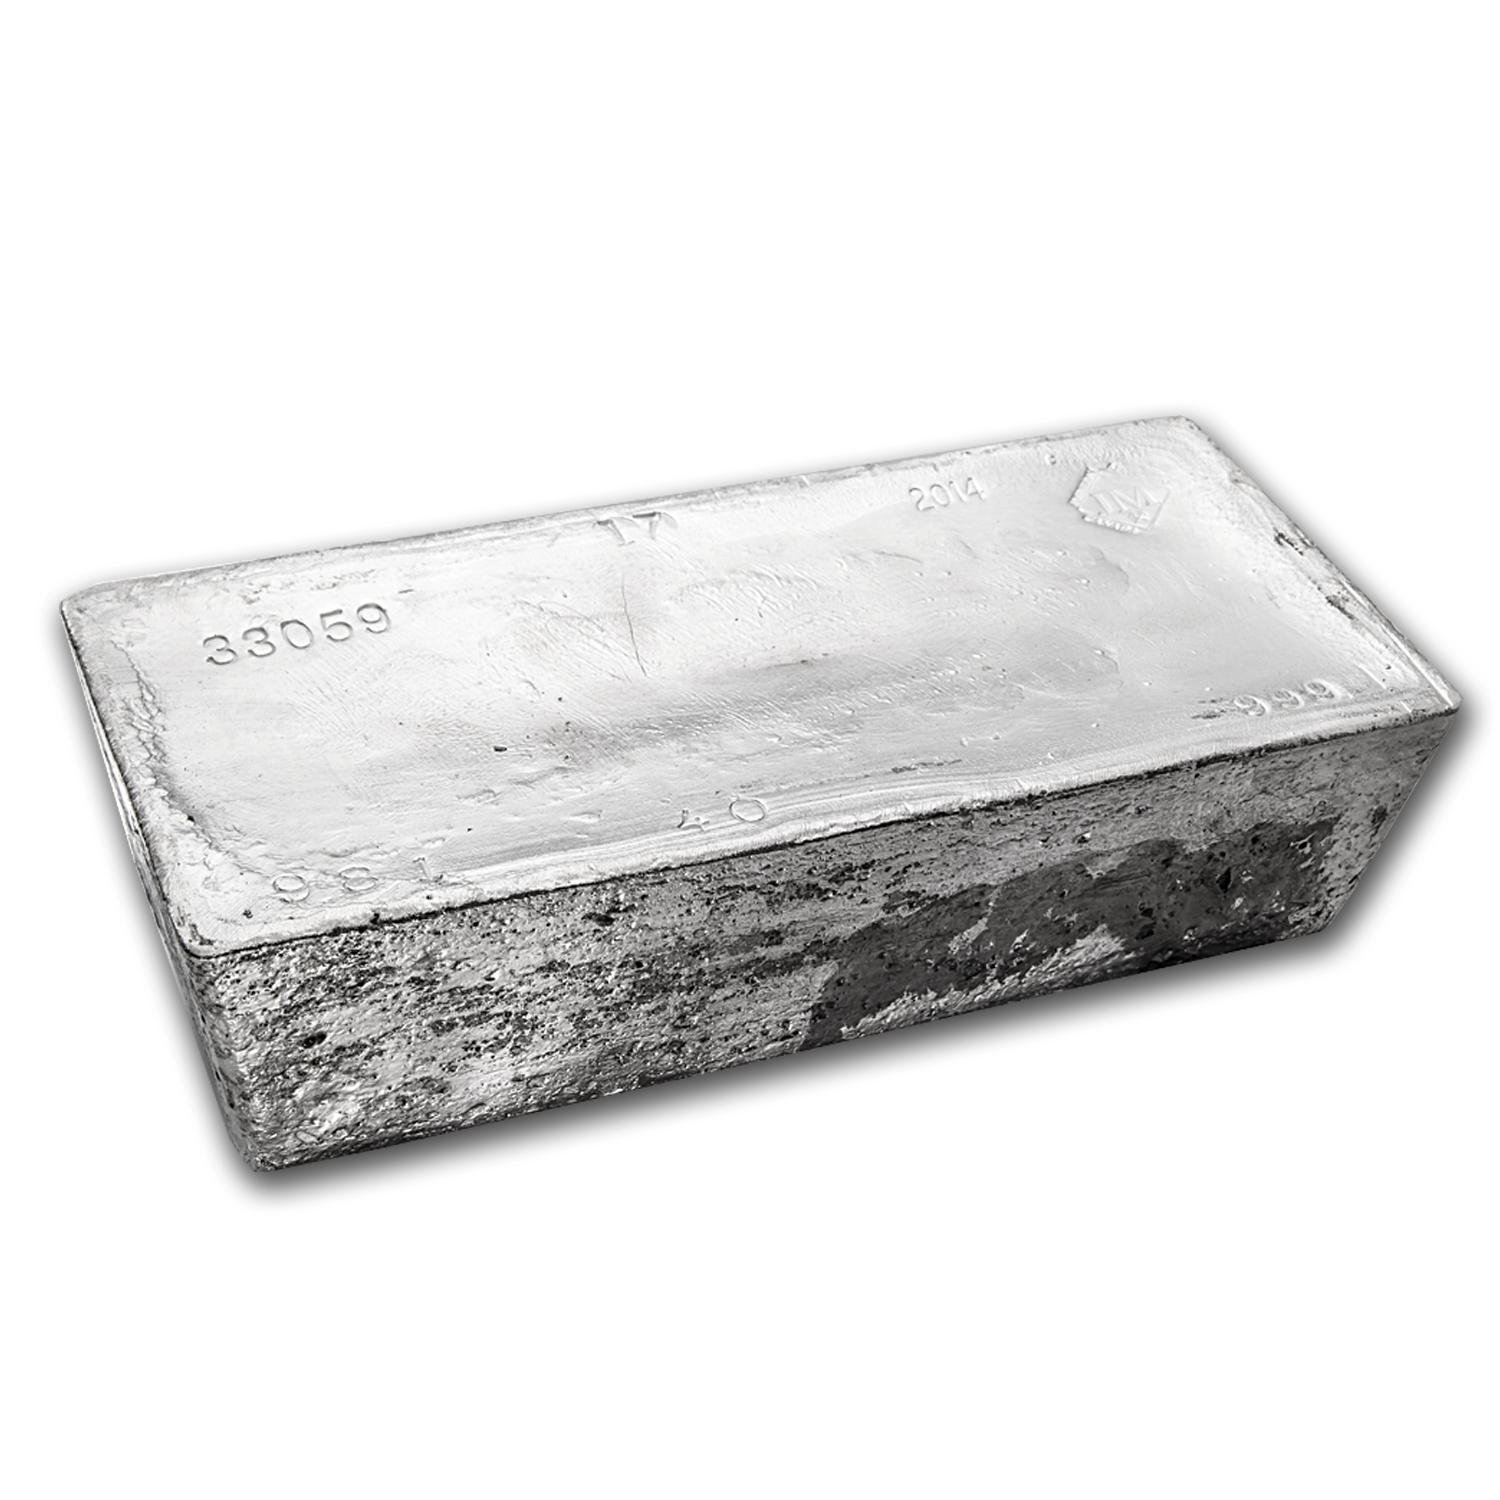 1003.3 oz Silver Bar - RCM (#2015-01049) (5/4)